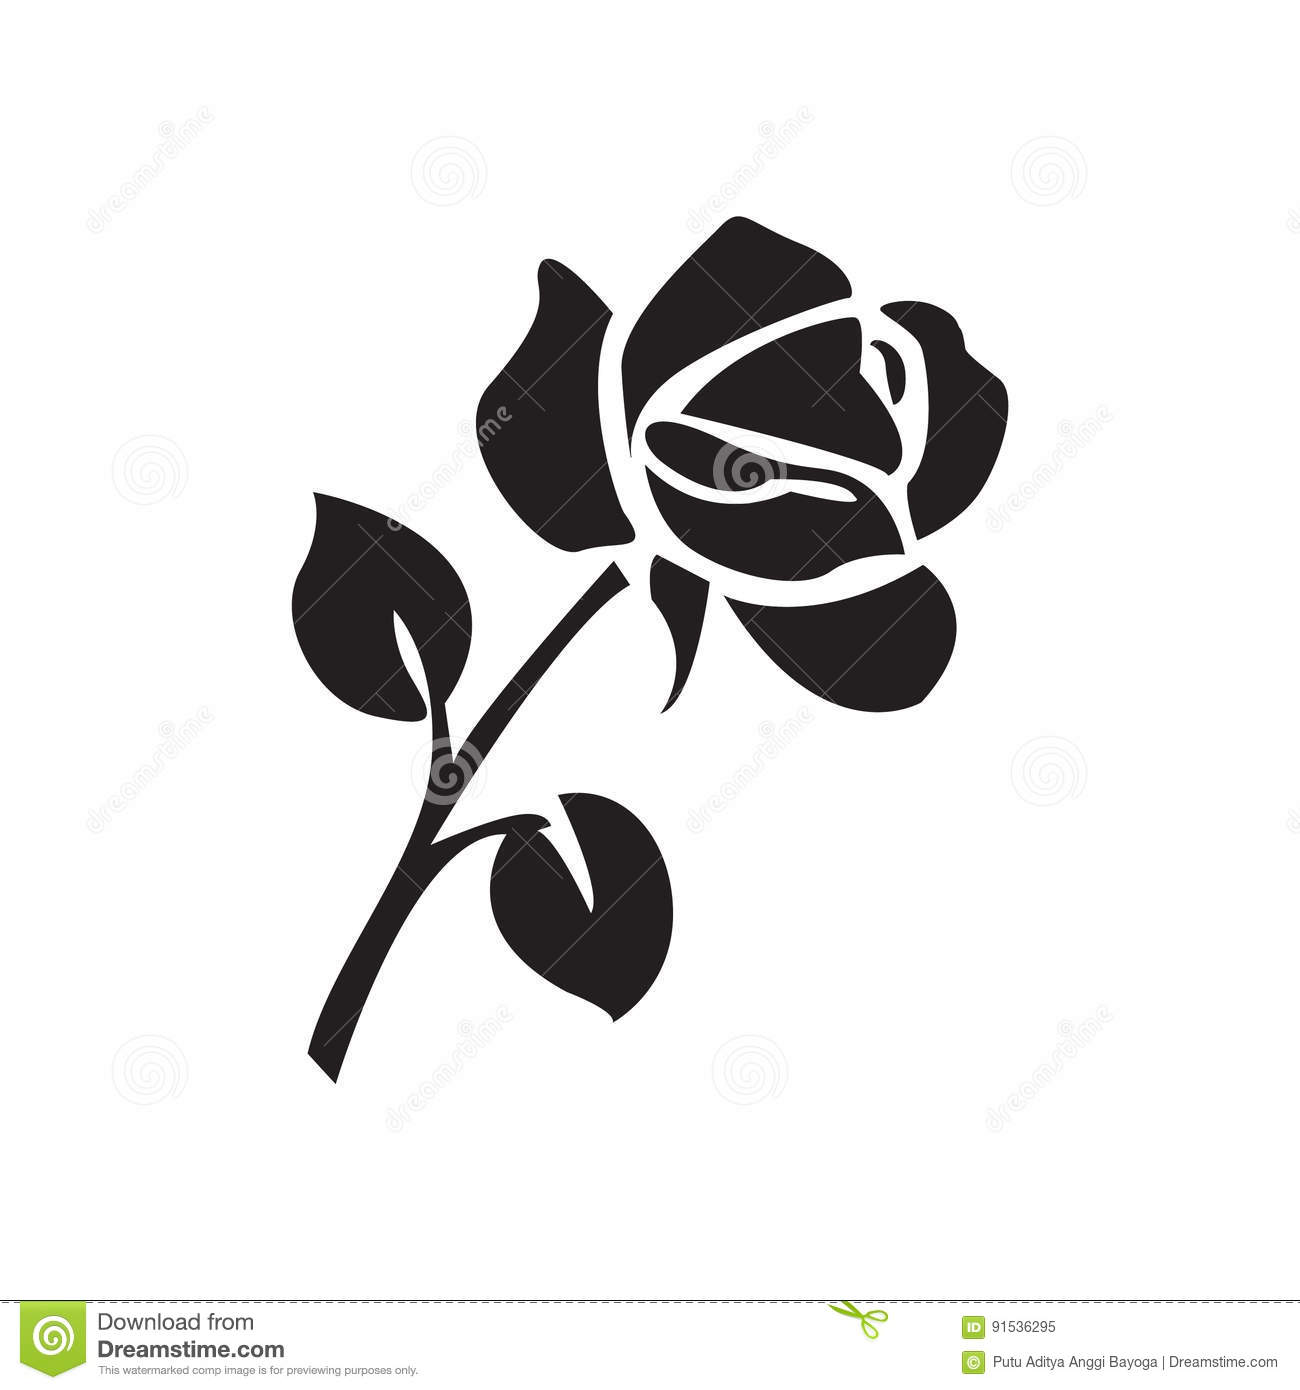 5ce6738ce Flat black rose icon stock vector. Illustration of plant - 91536295